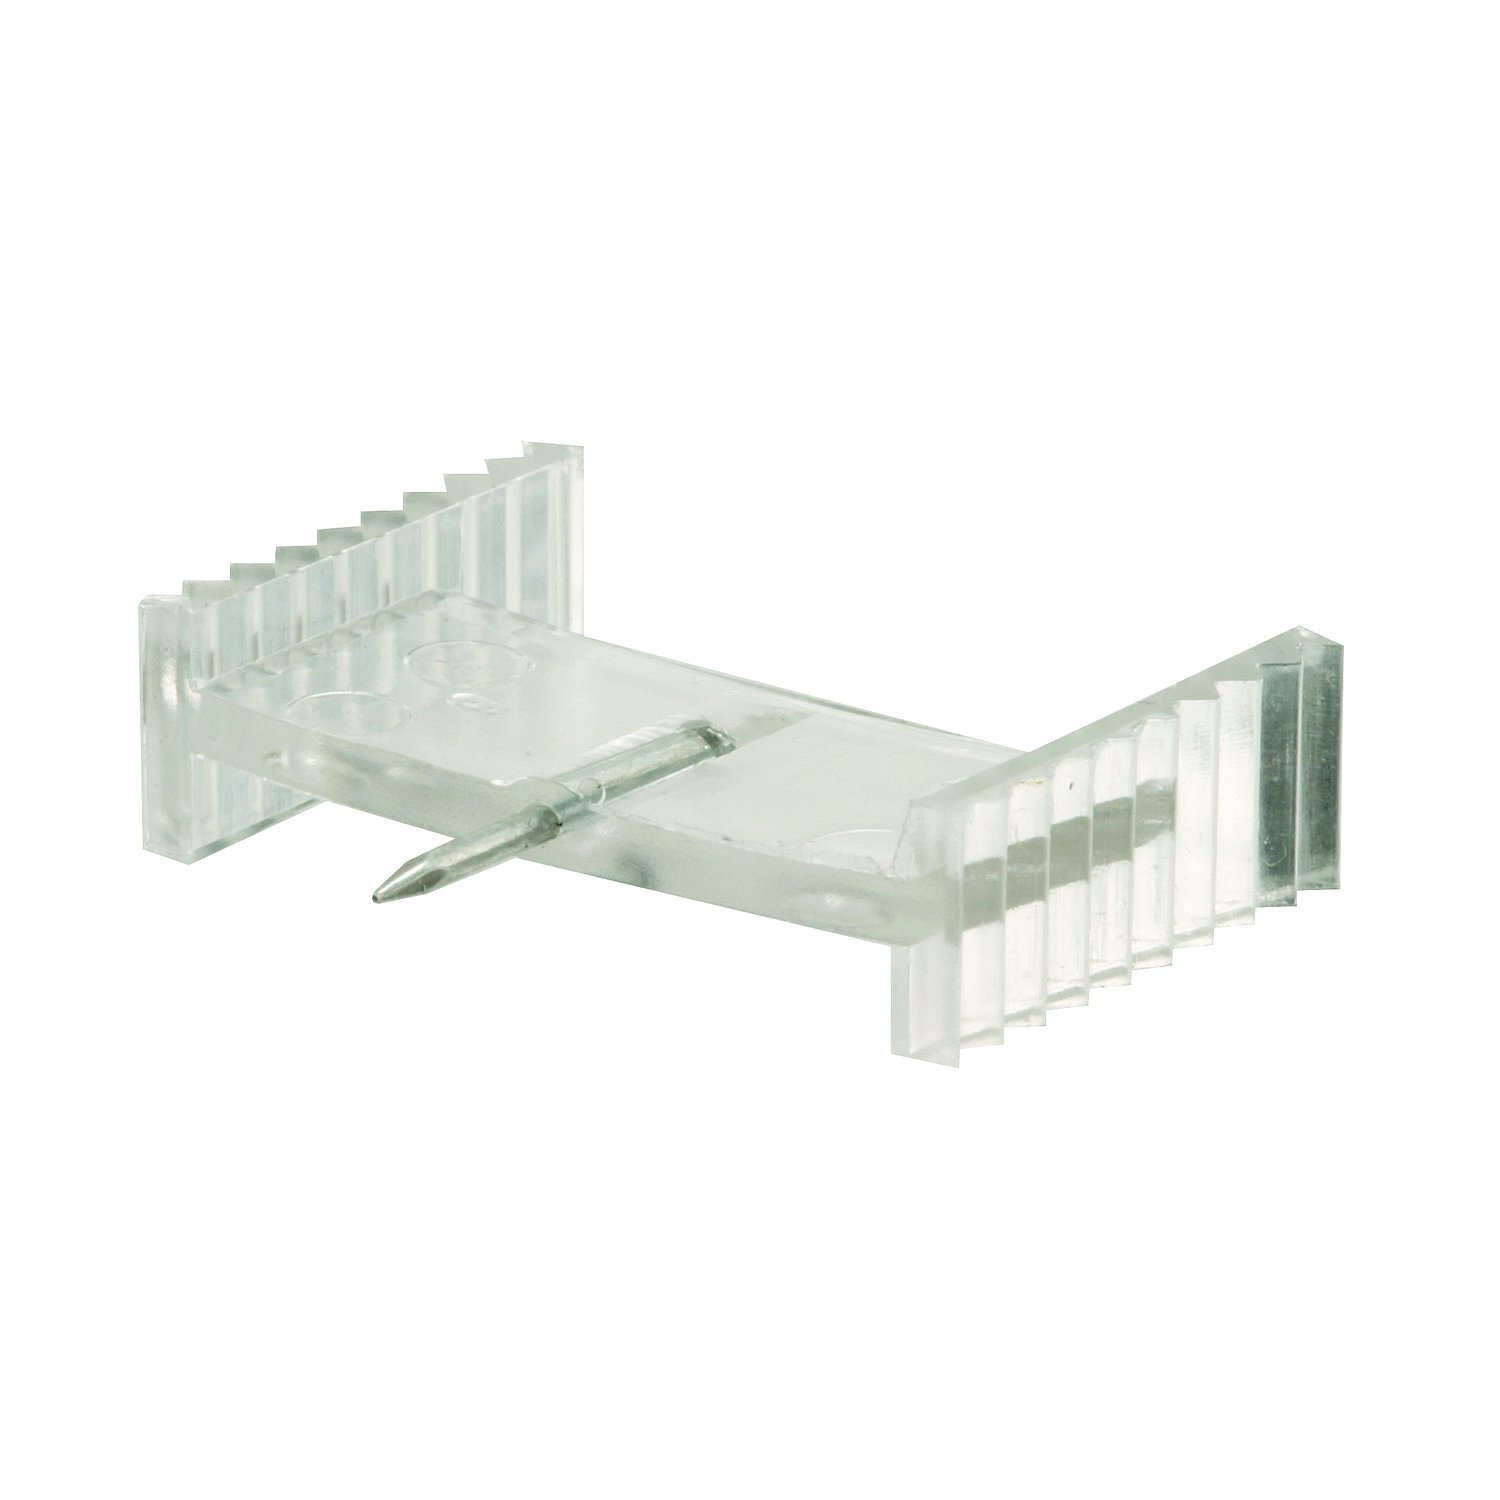 Prime-Line Products L 5802 Window Grid Retainer Clips with Steel Needle (6 Pack), Plastic/Clear, 7/8''